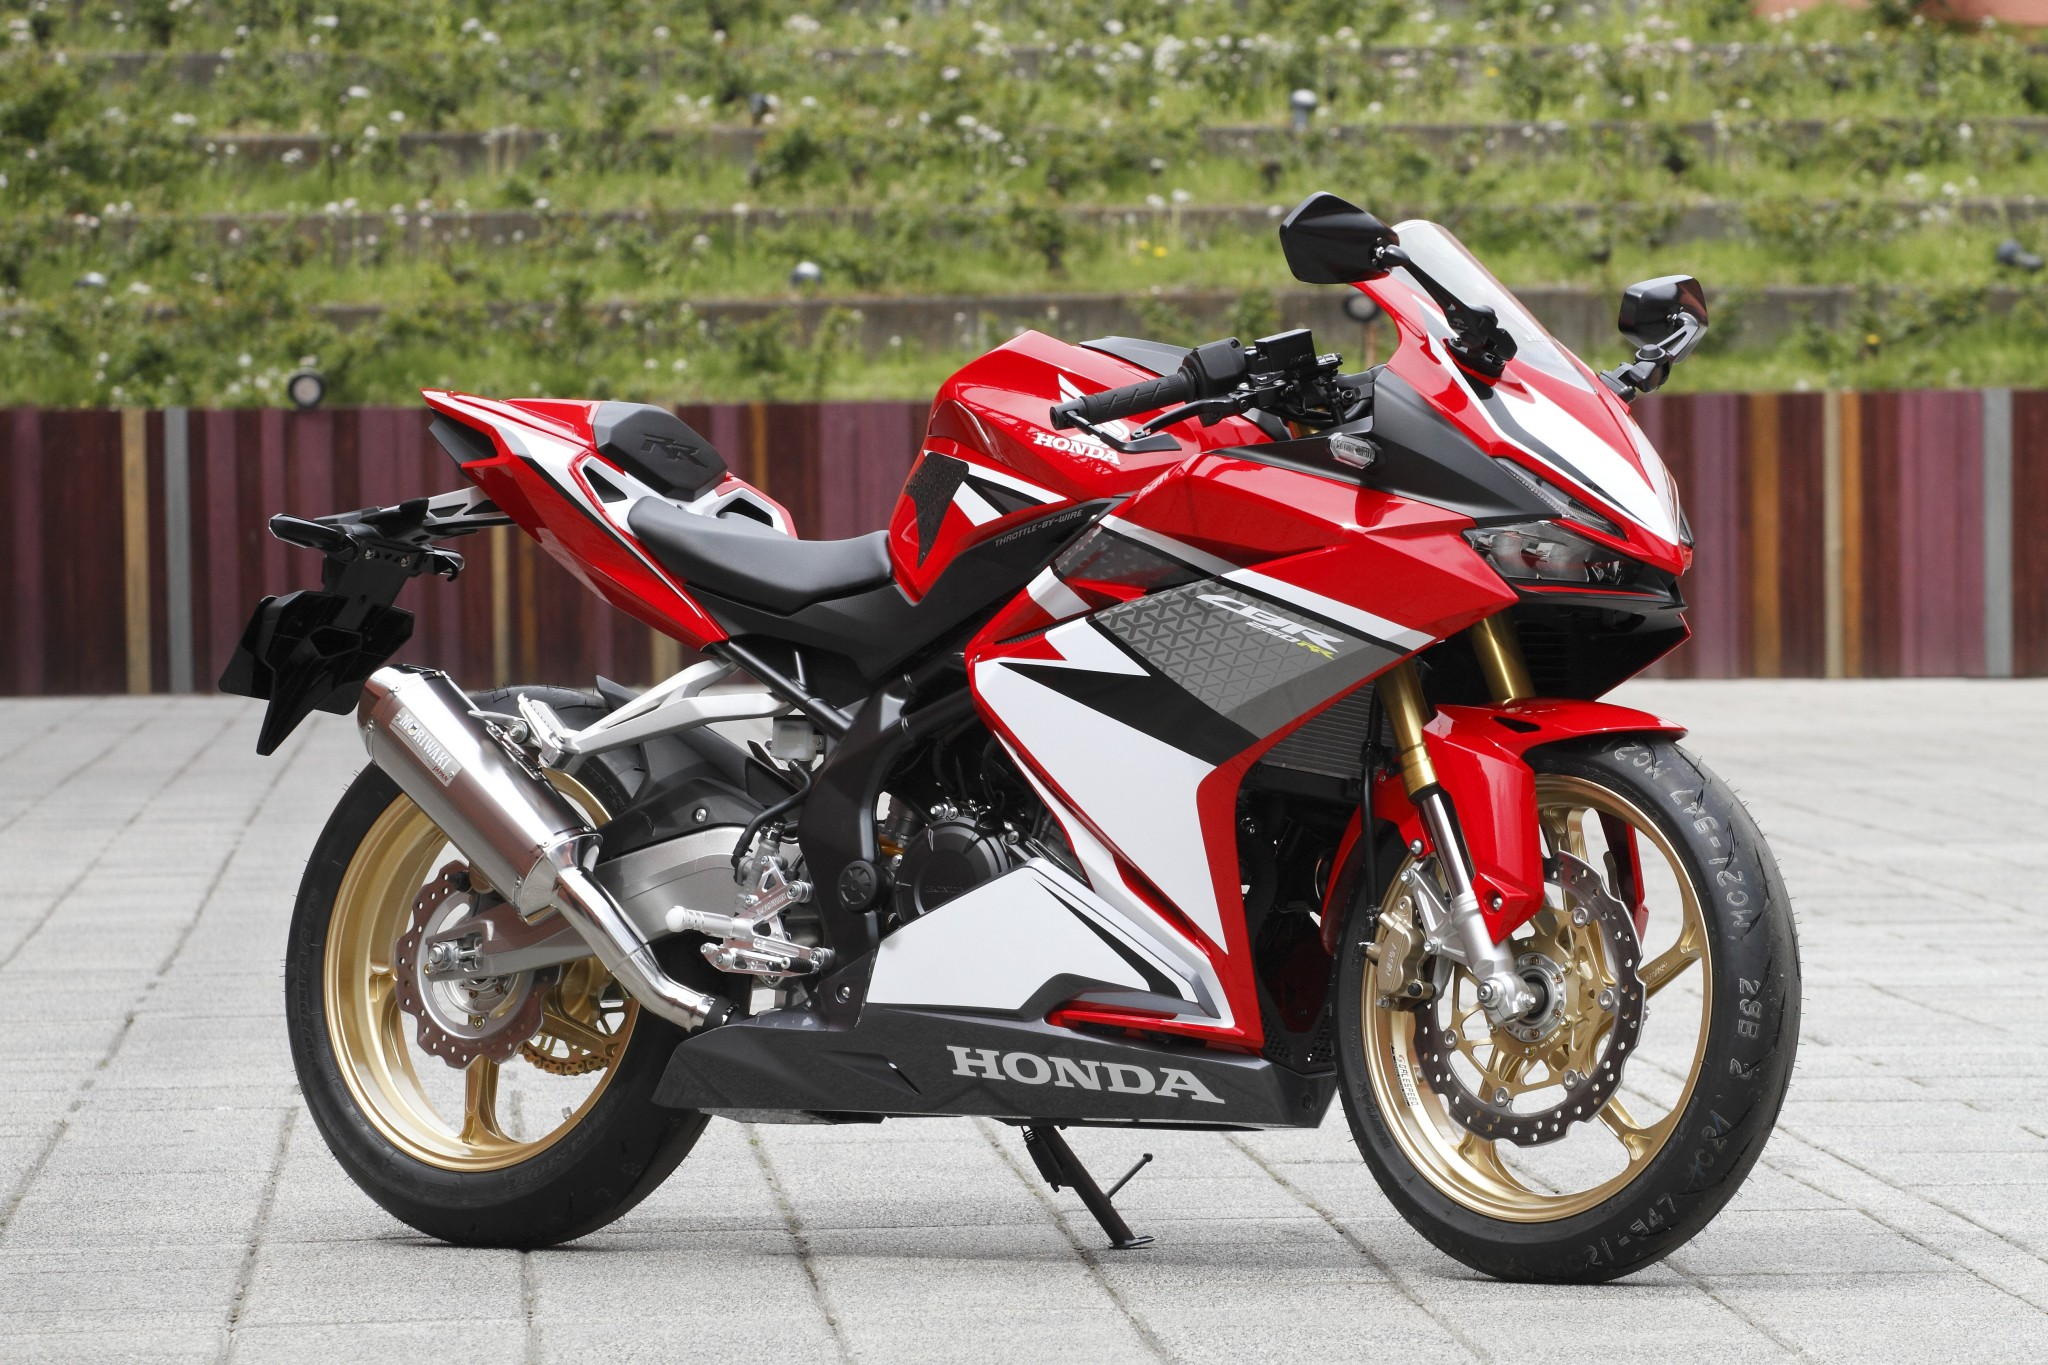 Test Drive Honda Cbr250rr Motorcycle News Webike Japan